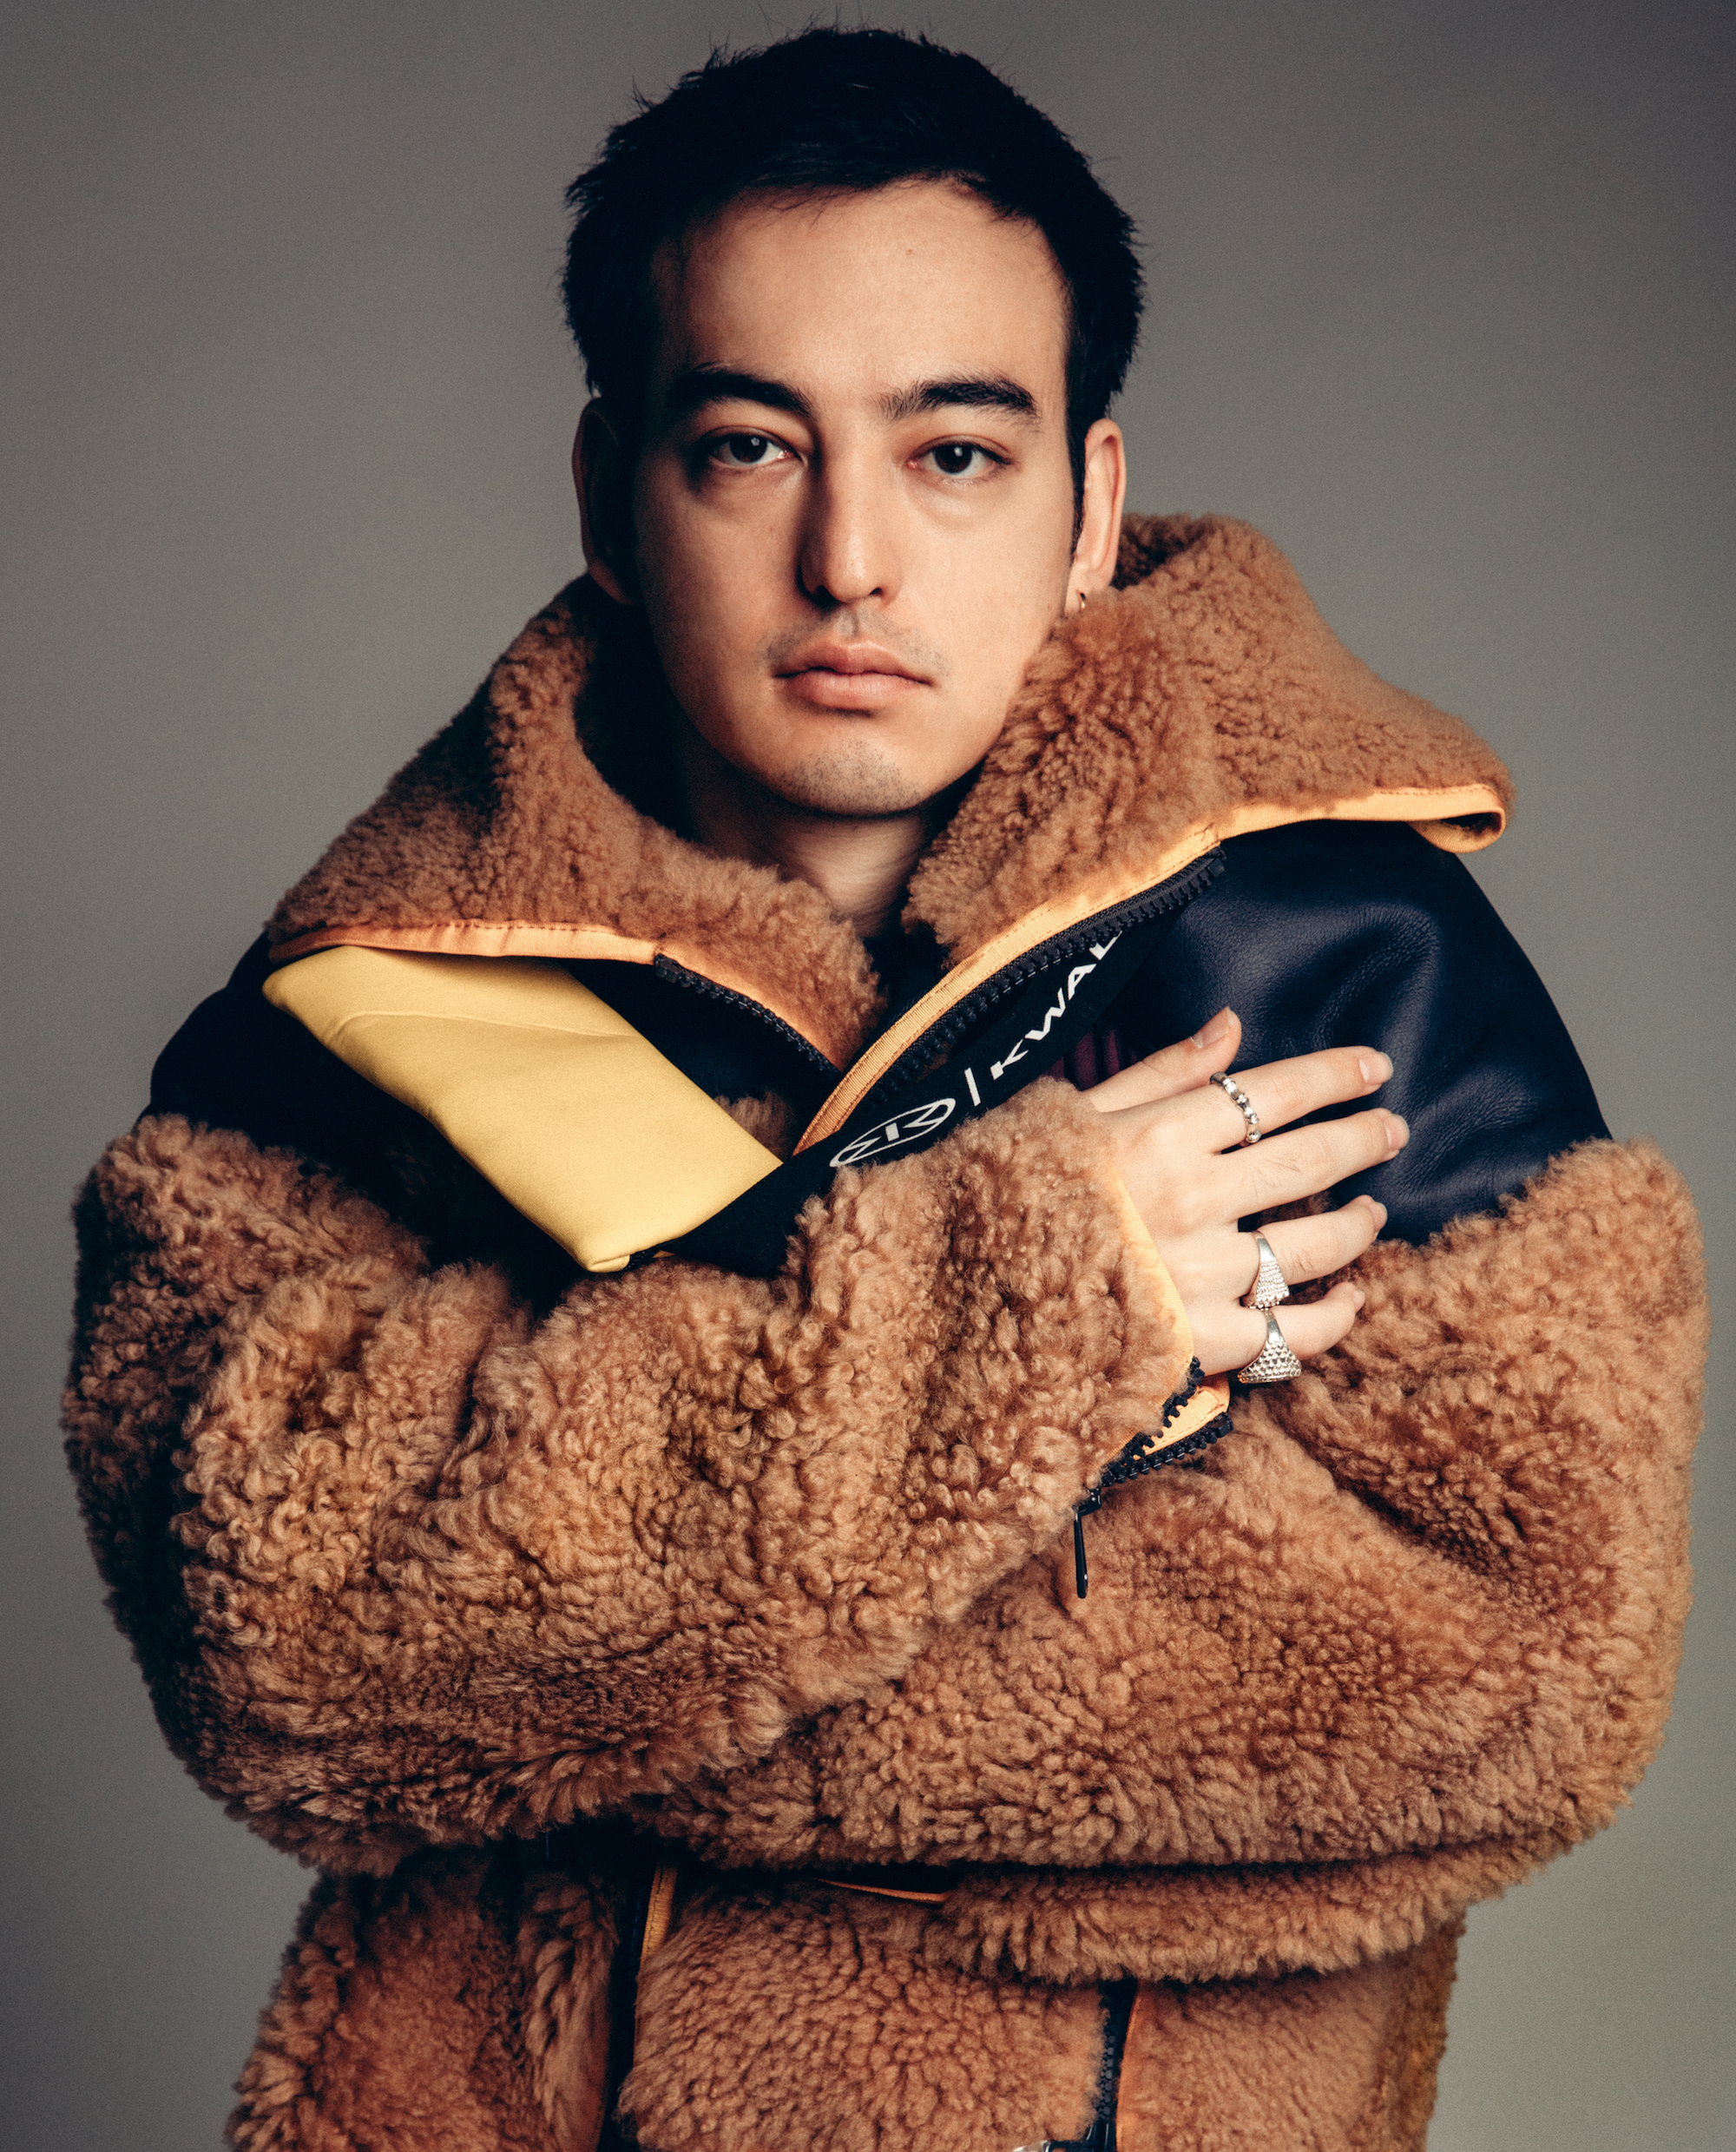 Youtuber and singer George Miller, aka Joji, from Spring 19 Wonderland issue brown jacker